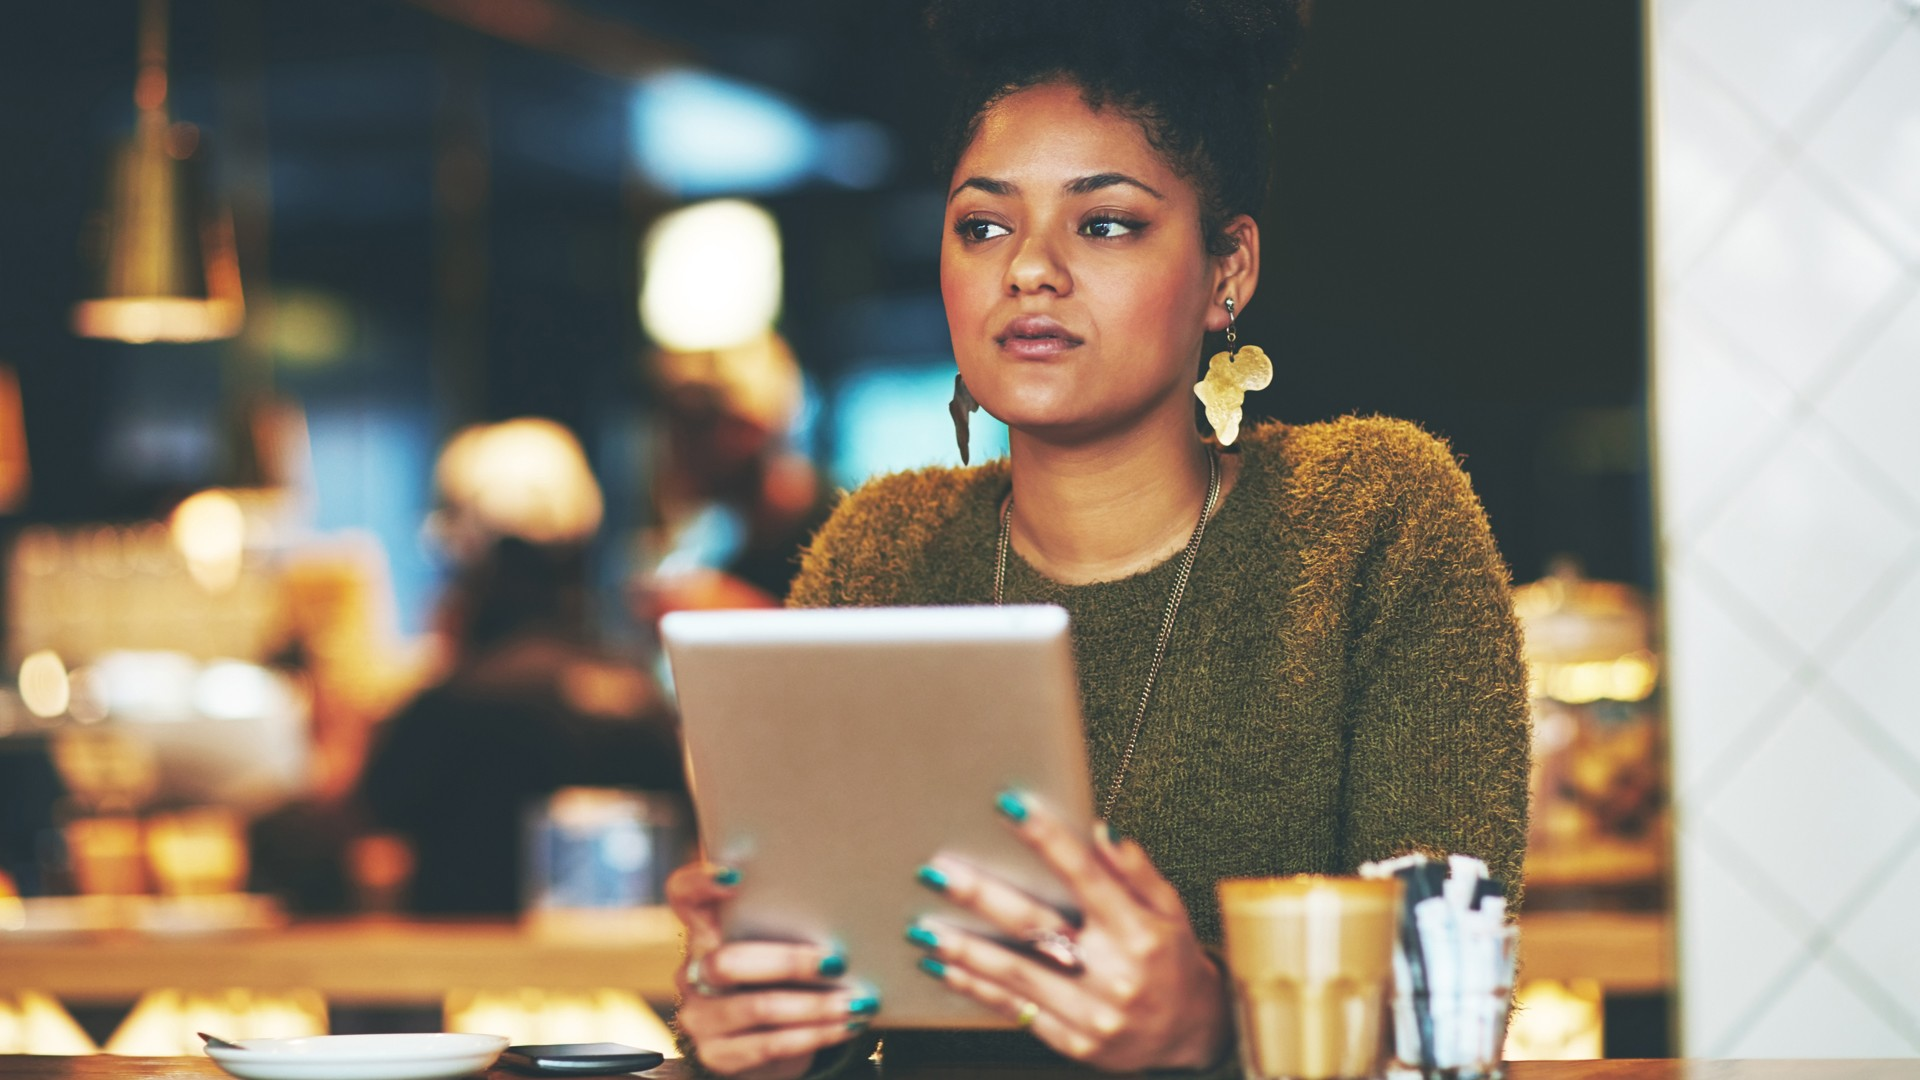 Shot of an attractive young woman looking thoughtful while using a digital tablet in a cafe.